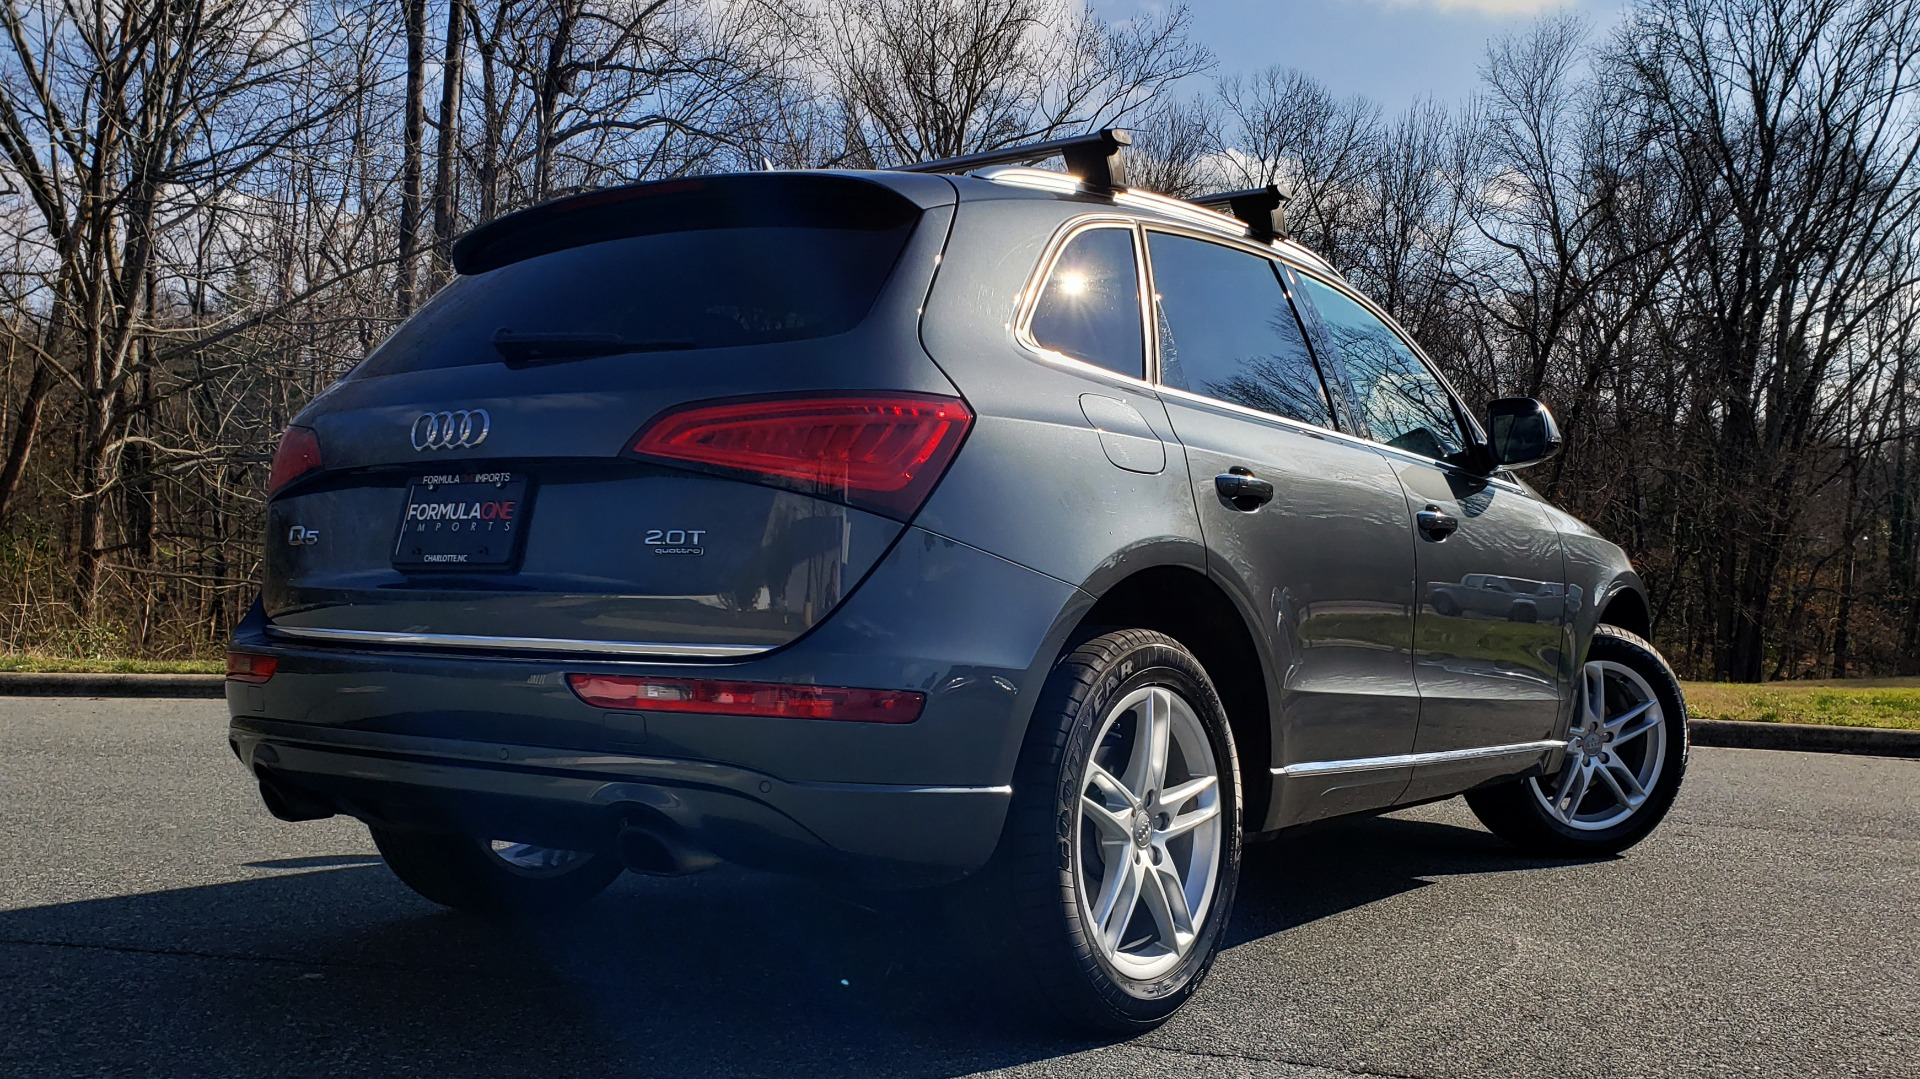 Used 2017 Audi Q5 PREMIUM PLUS / TECH / NAV / PANO / REARVIEW / B&O SND for sale Sold at Formula Imports in Charlotte NC 28227 6